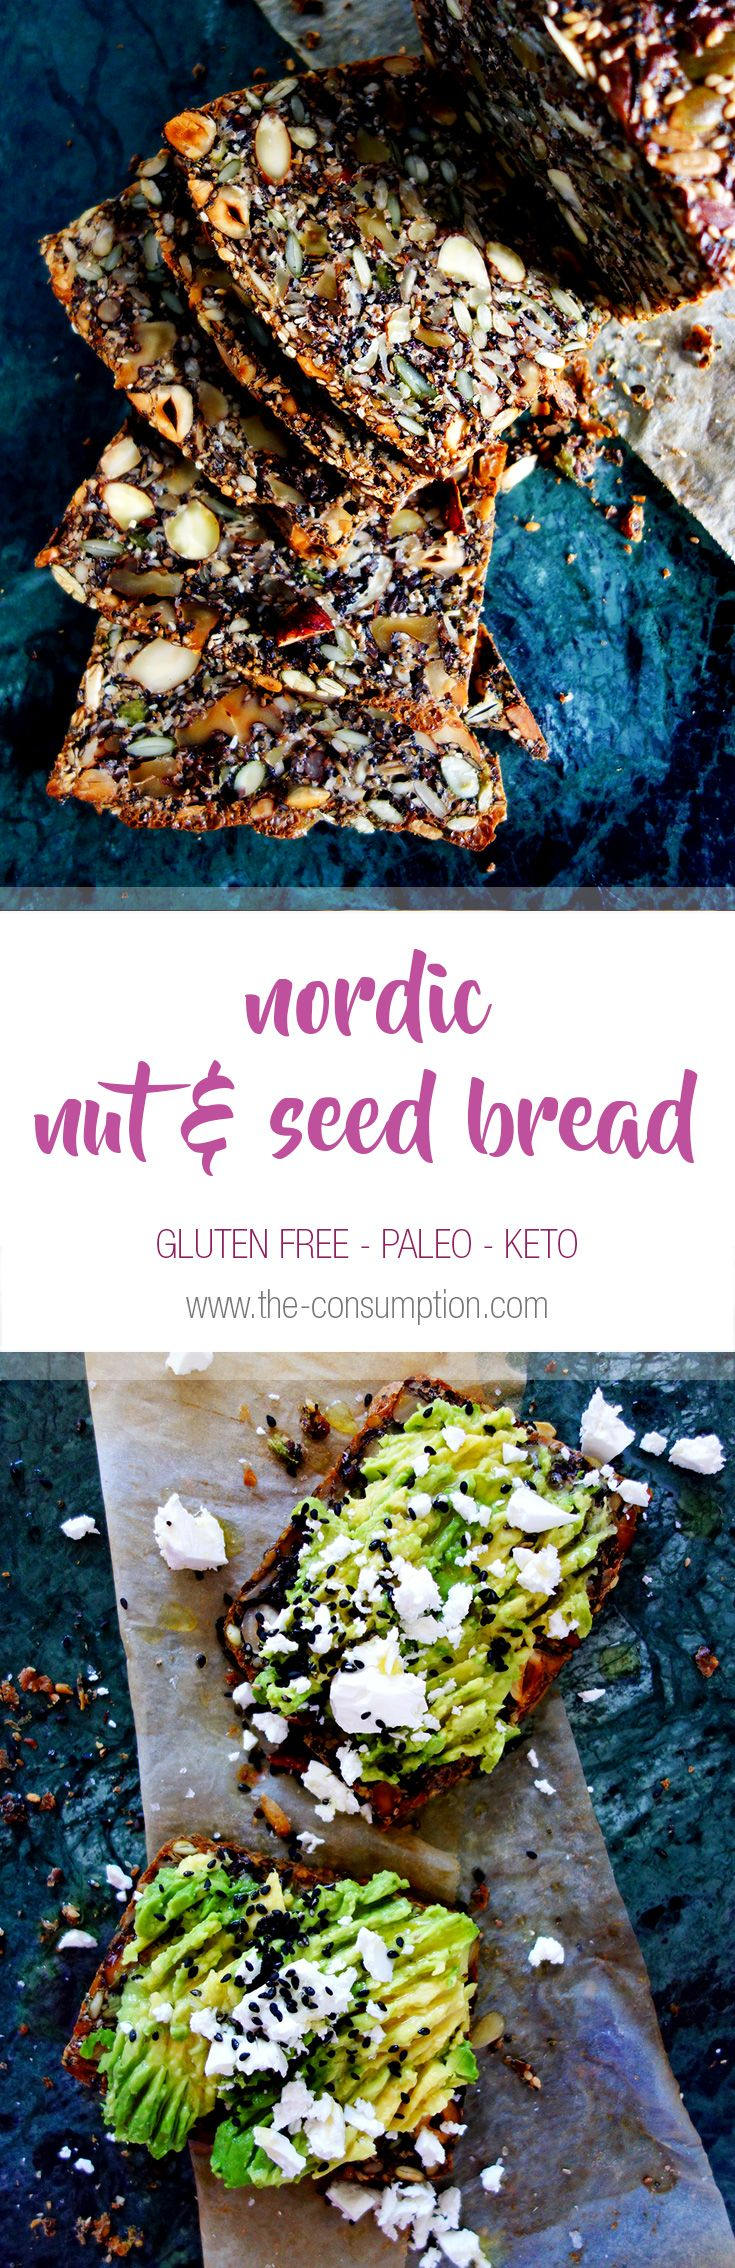 This Nordic Nut & Seed Bread is the bomb! Gluten free, paleo, keto, packed with filling nuts, seeds and perfect for a huge serving of smashed avocado!